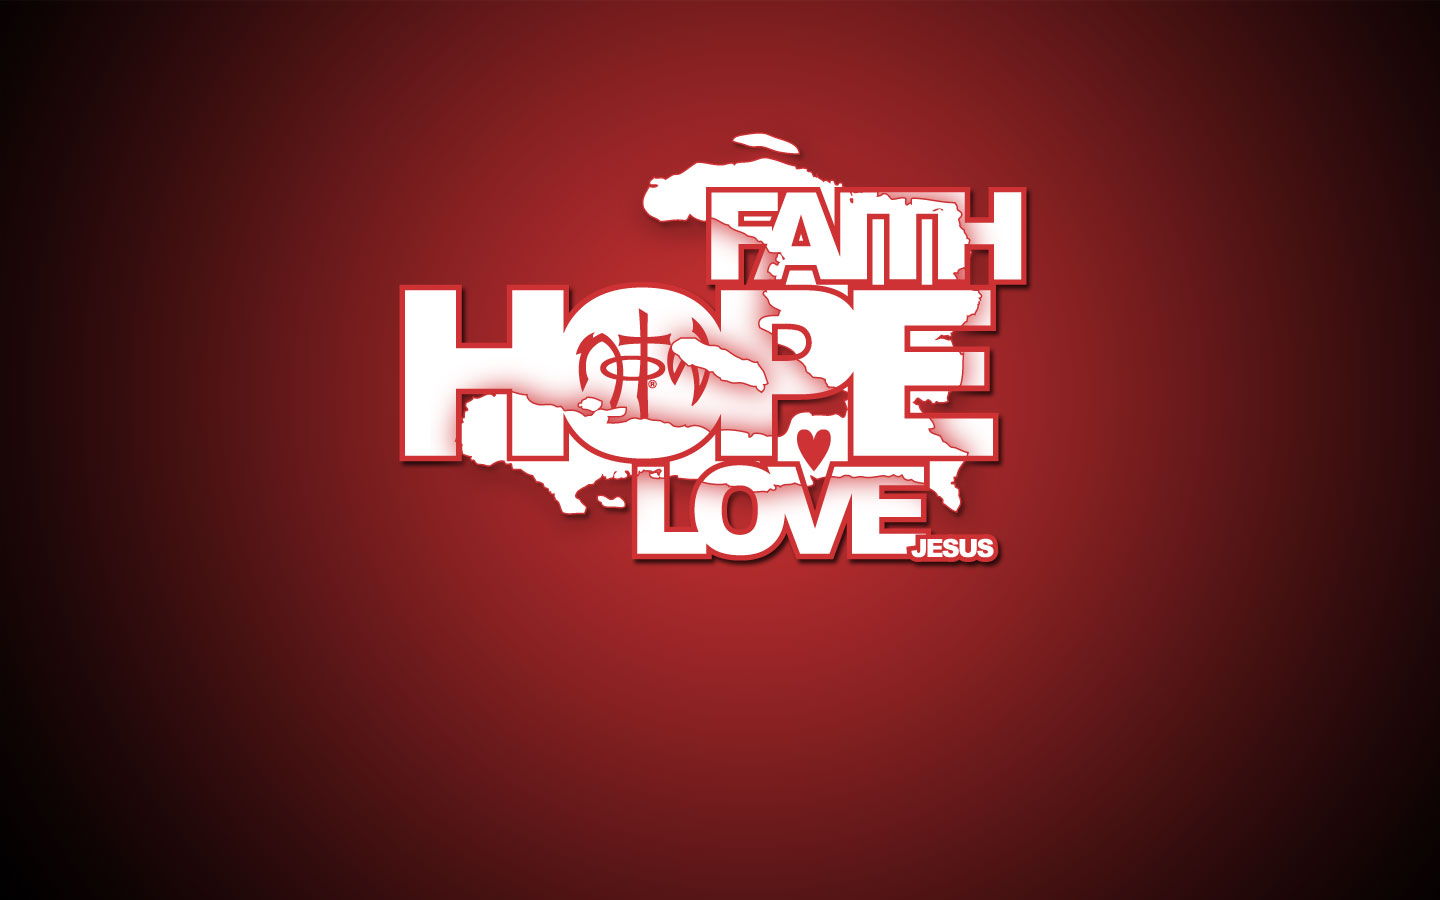 Faith, Hope, Love Wallpaper - christian Wallpapers and ...